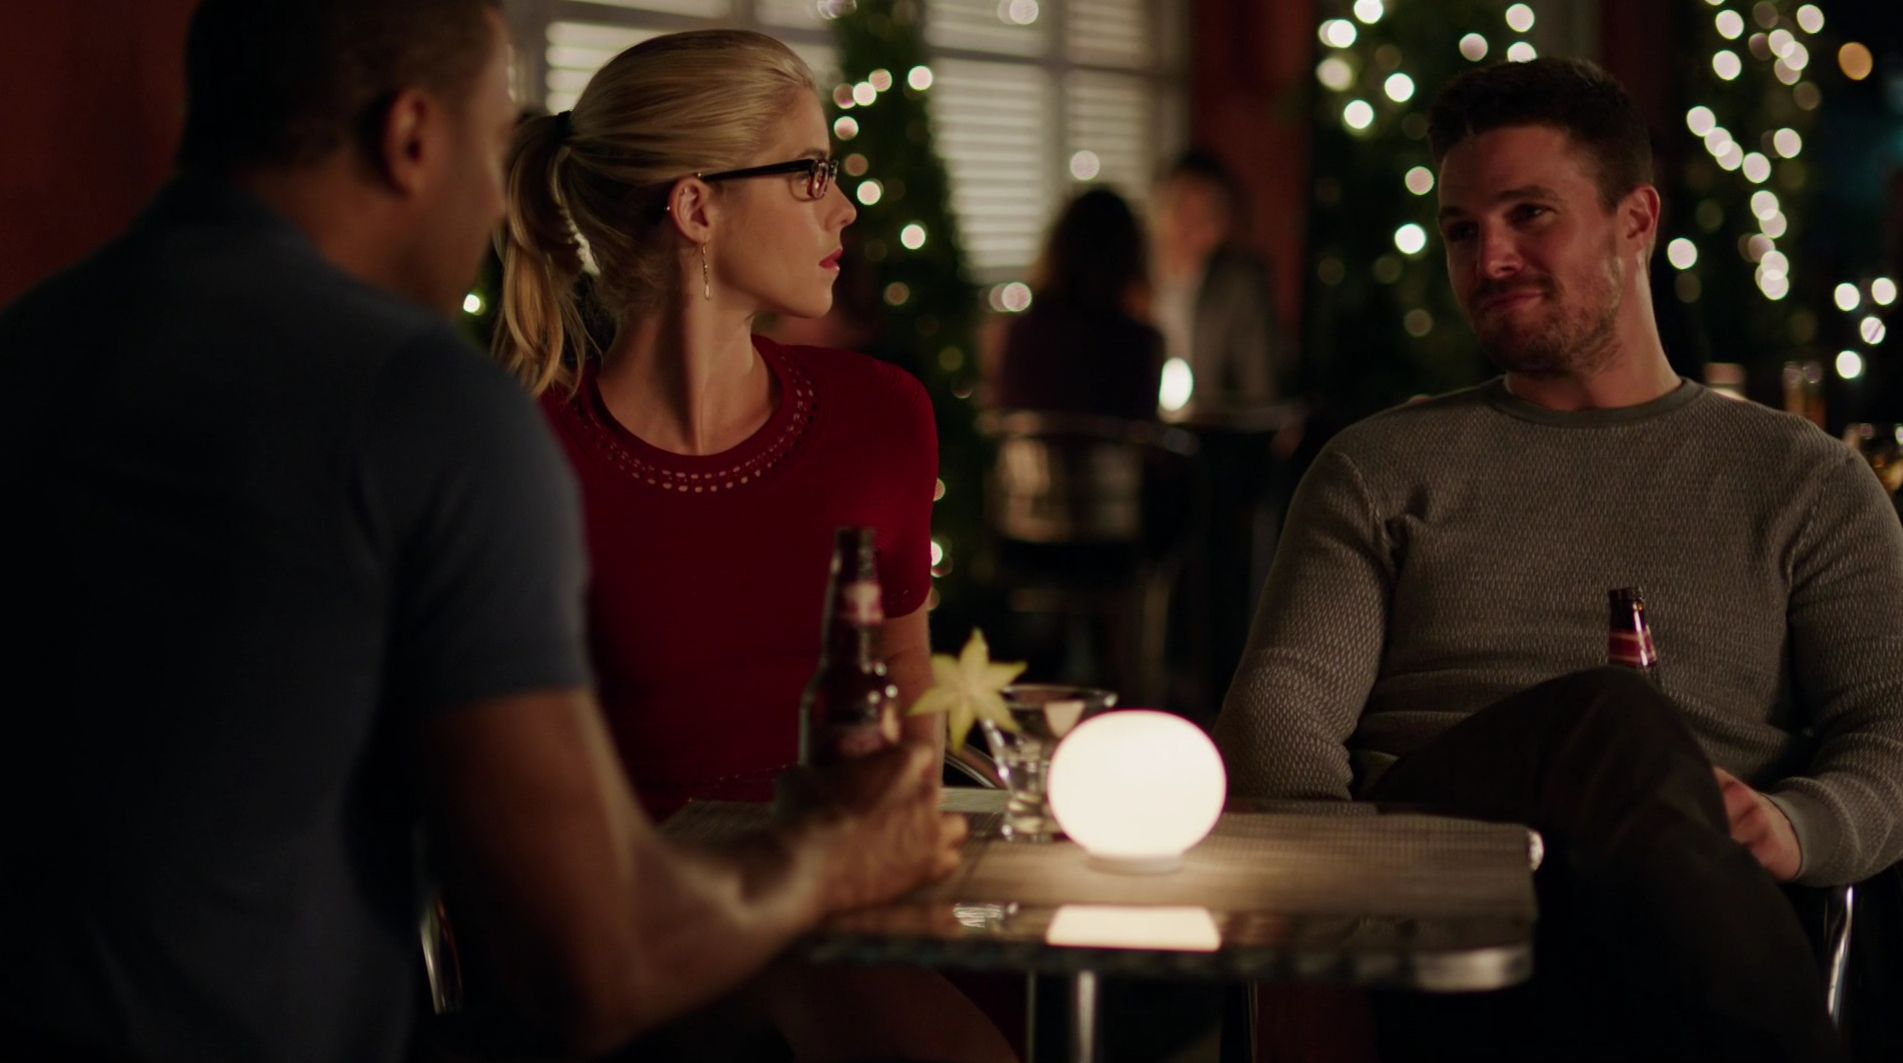 Original Team Arrow: John Diggle, Felicity Smoak, Oliver Que